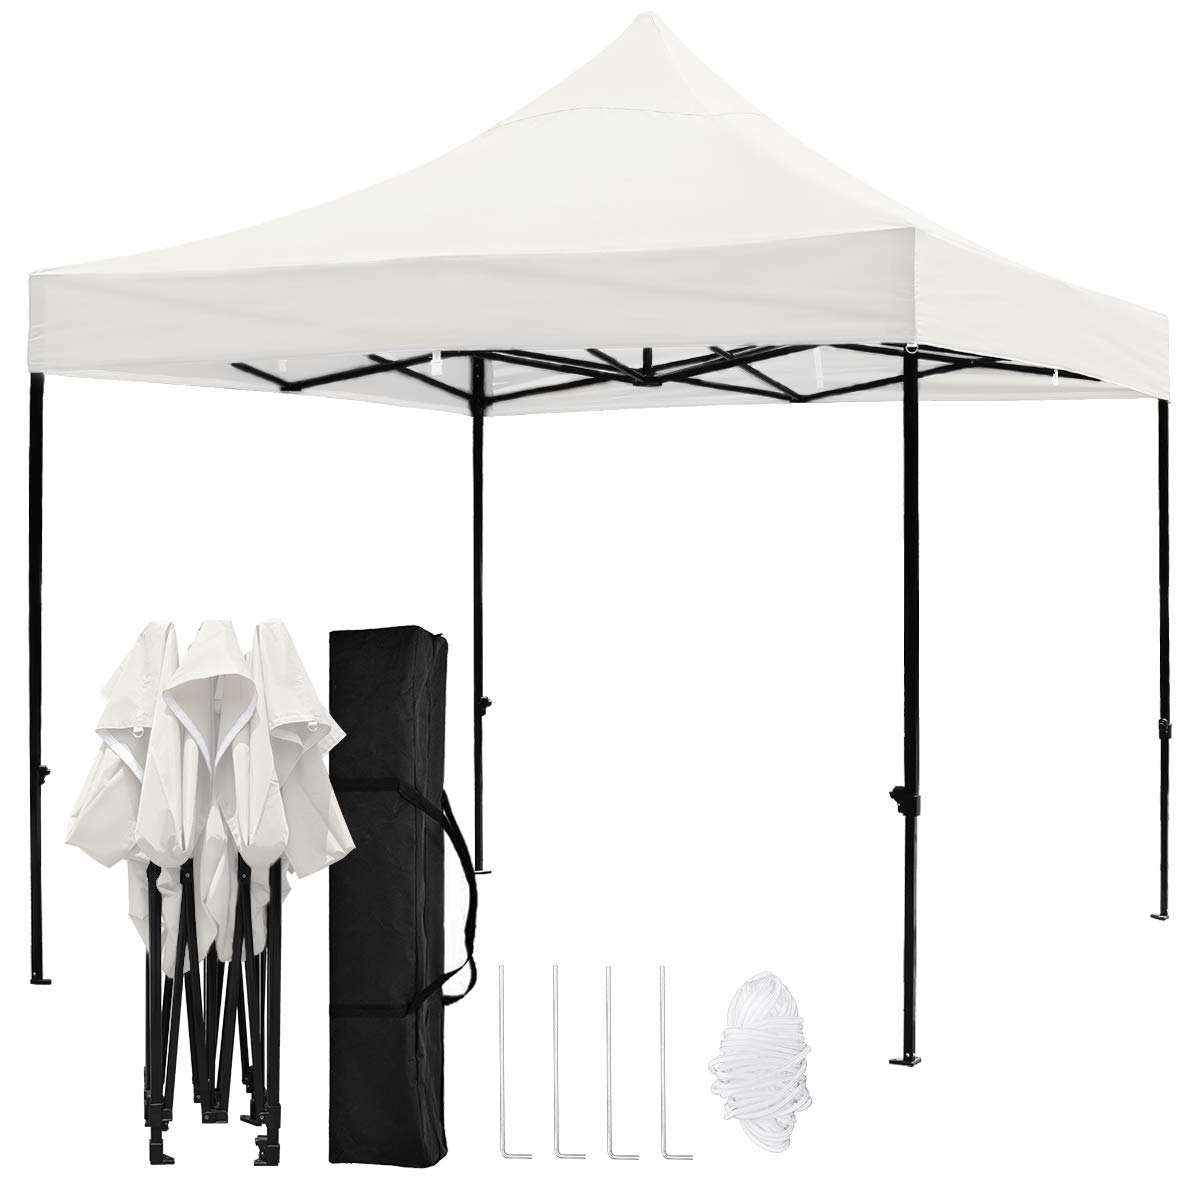 TopCamp 5'x5' Ez Canopy Tent, Portable Pop up Heavy Duty Outdoor Waterproof Beach Party Tents Instant Sun Shelter - Beige 5ft x 5ft